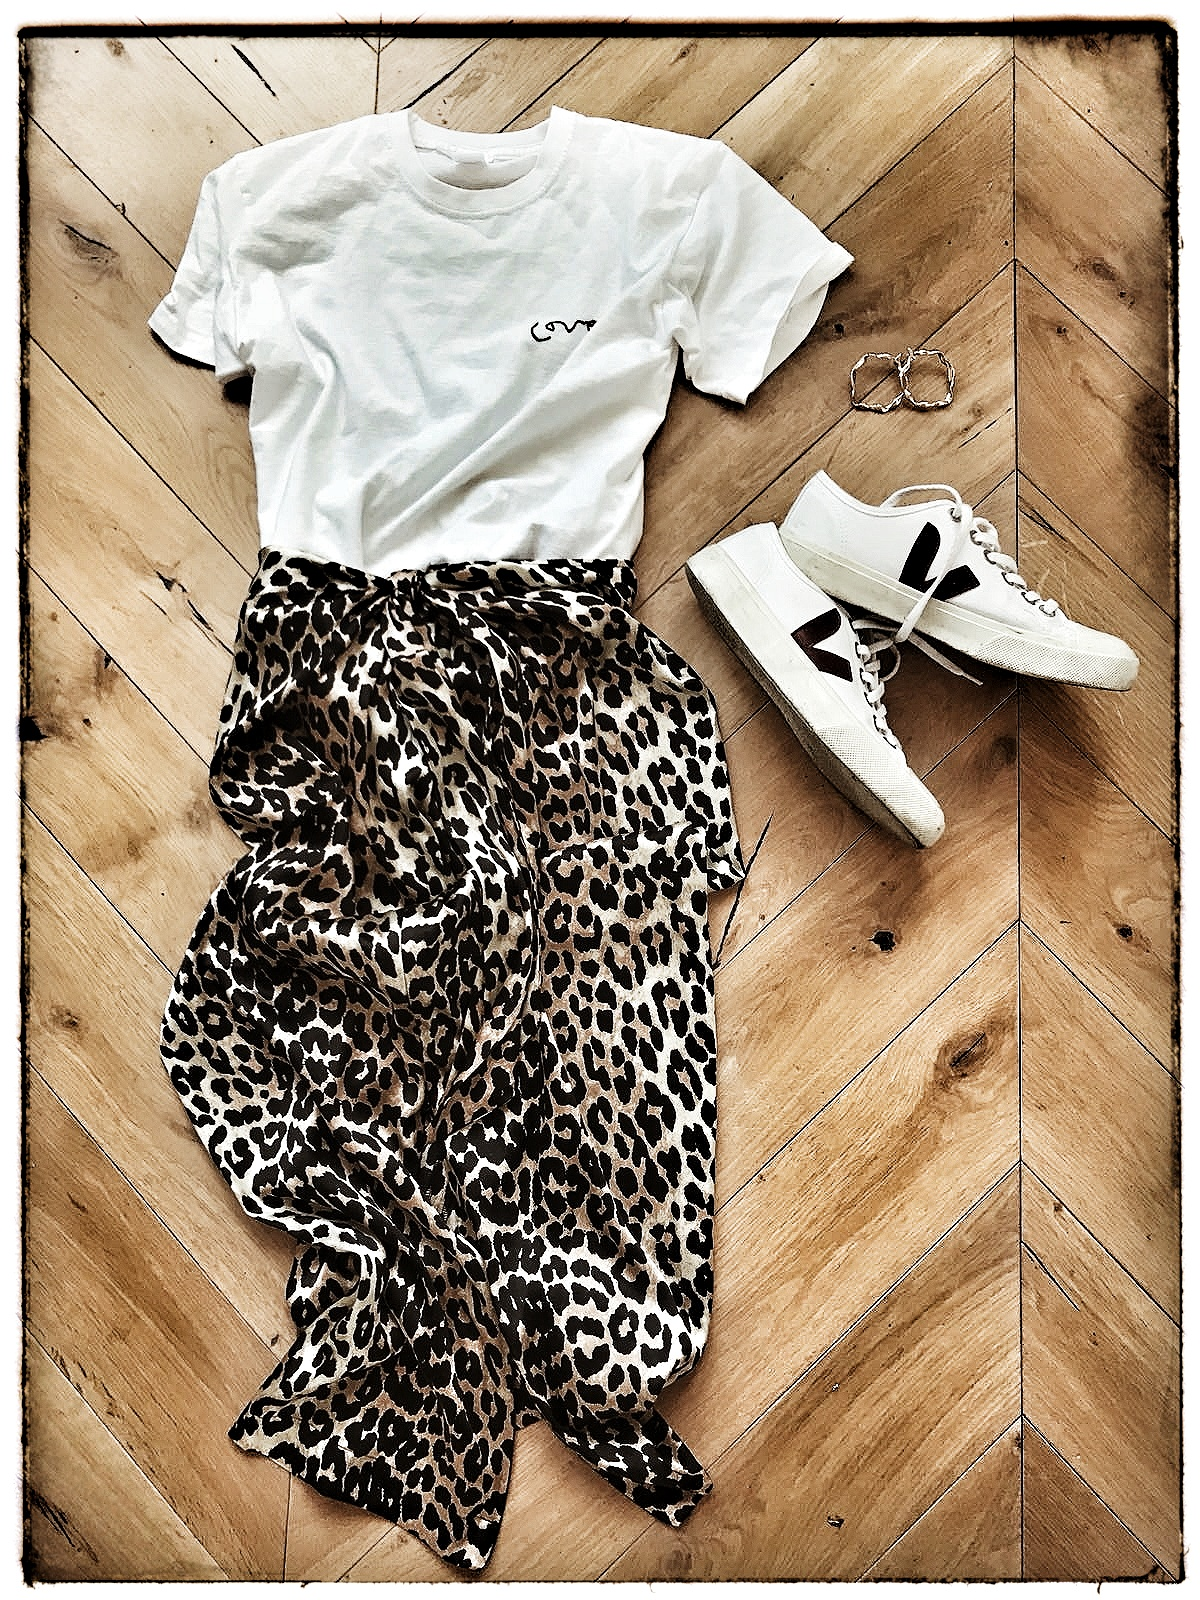 T-Short from  Meylor Goods , Skirt from  Ganni  and trainers from  Veja